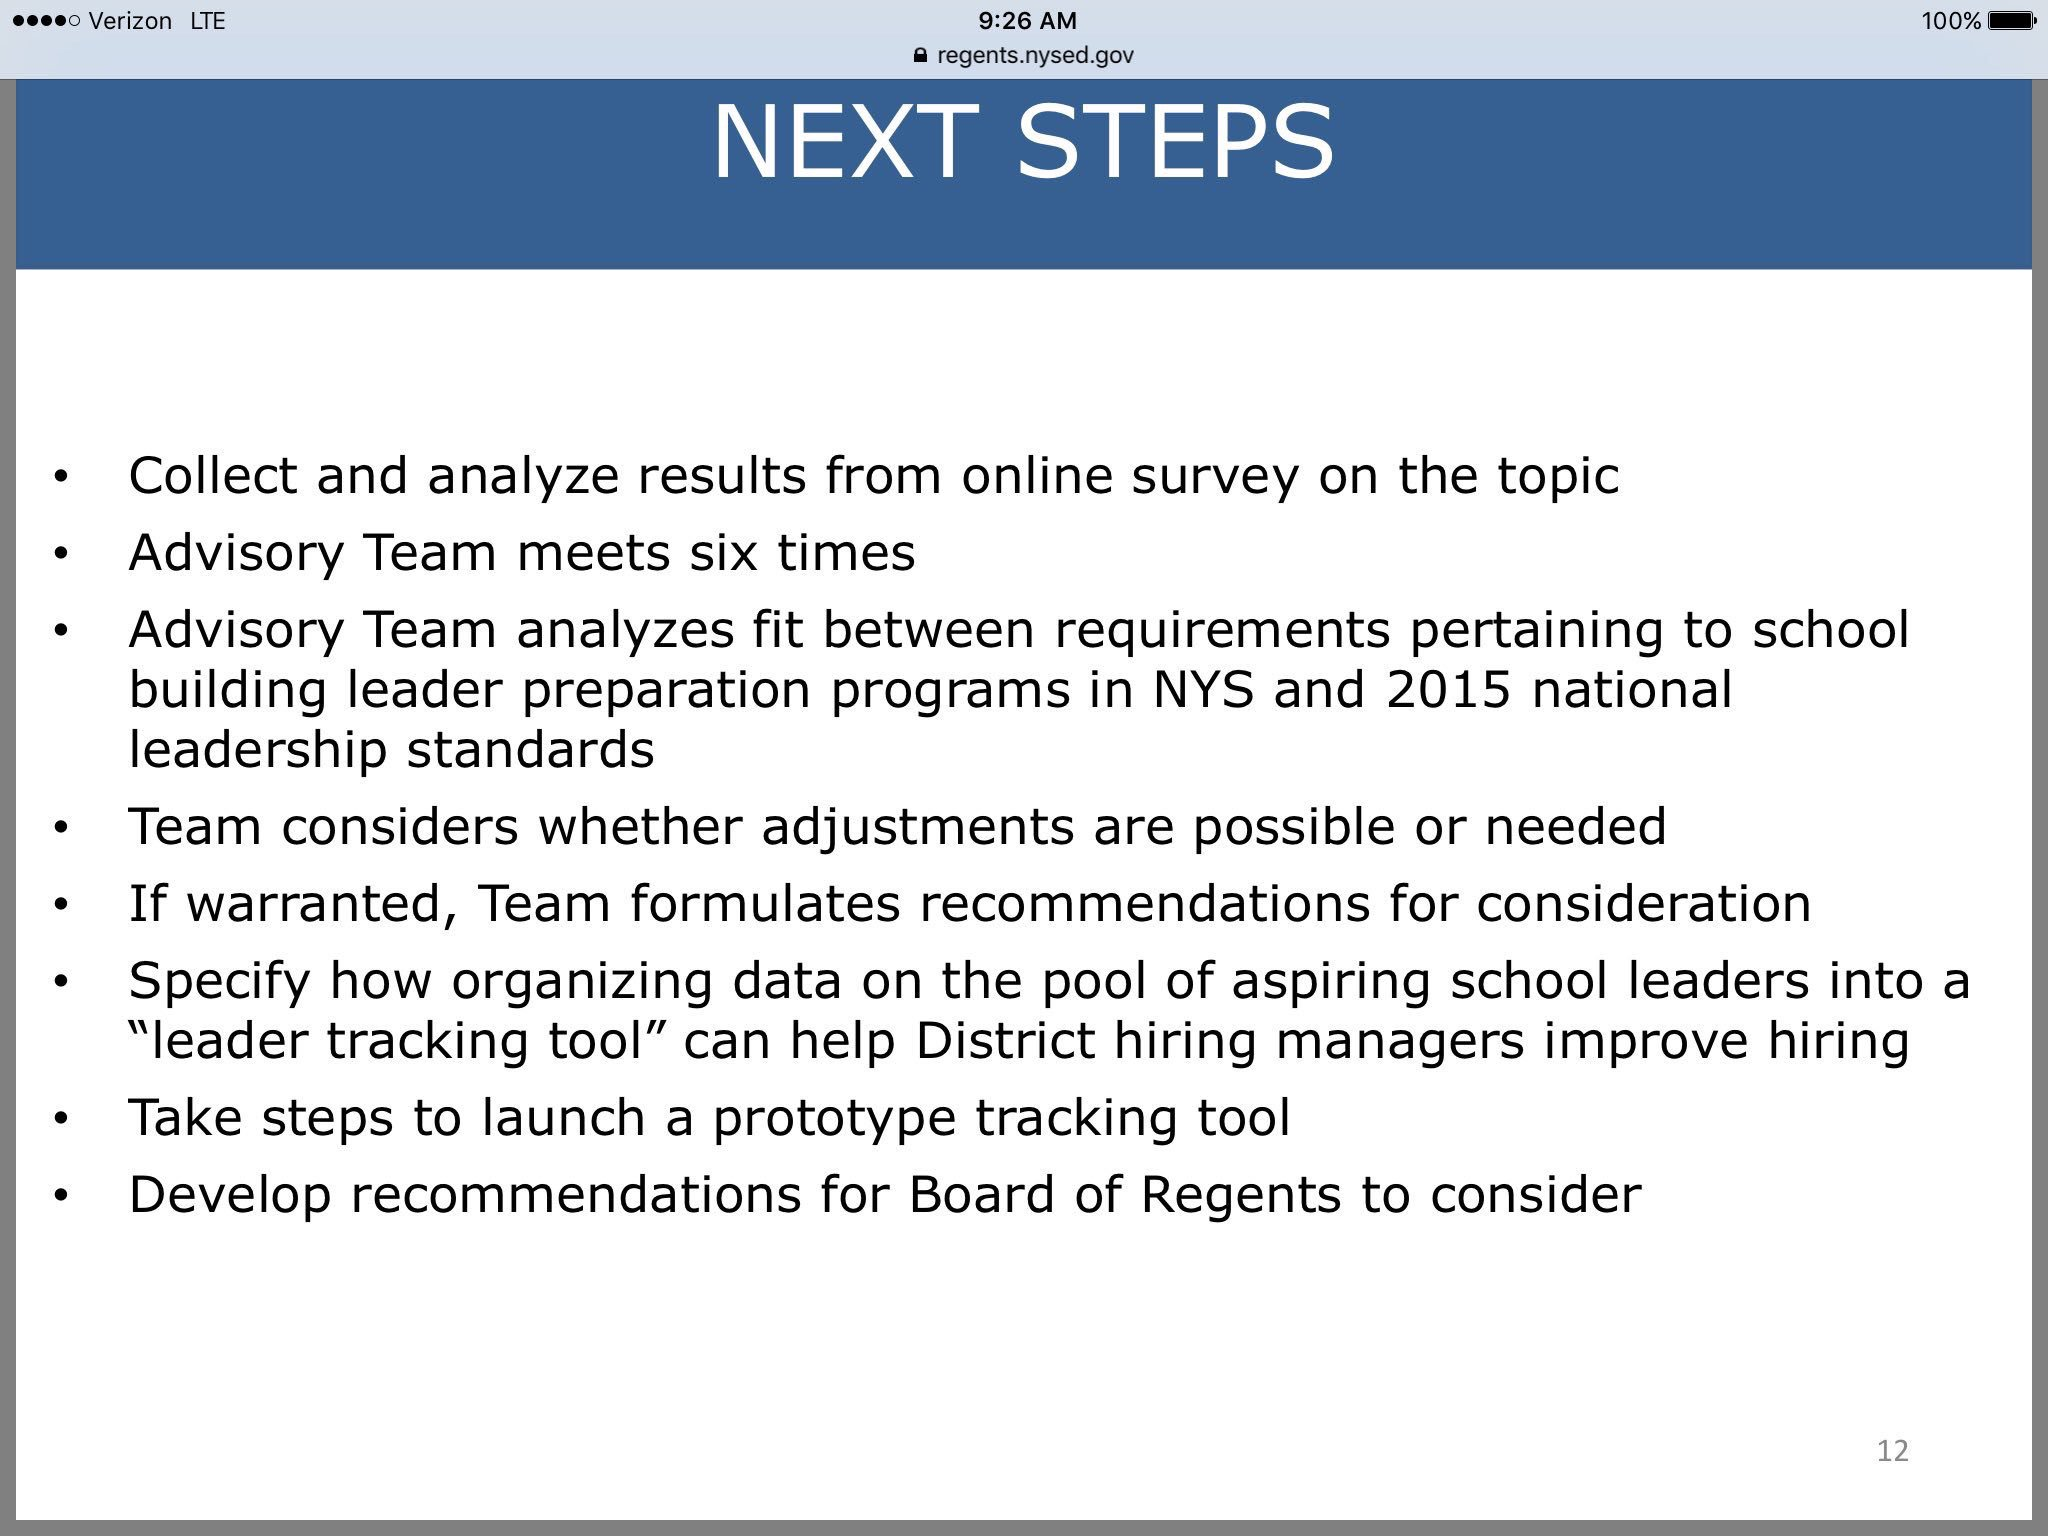 Next steps for Principal project @NYSEDNews https://t.co/SWKqX4xfqX